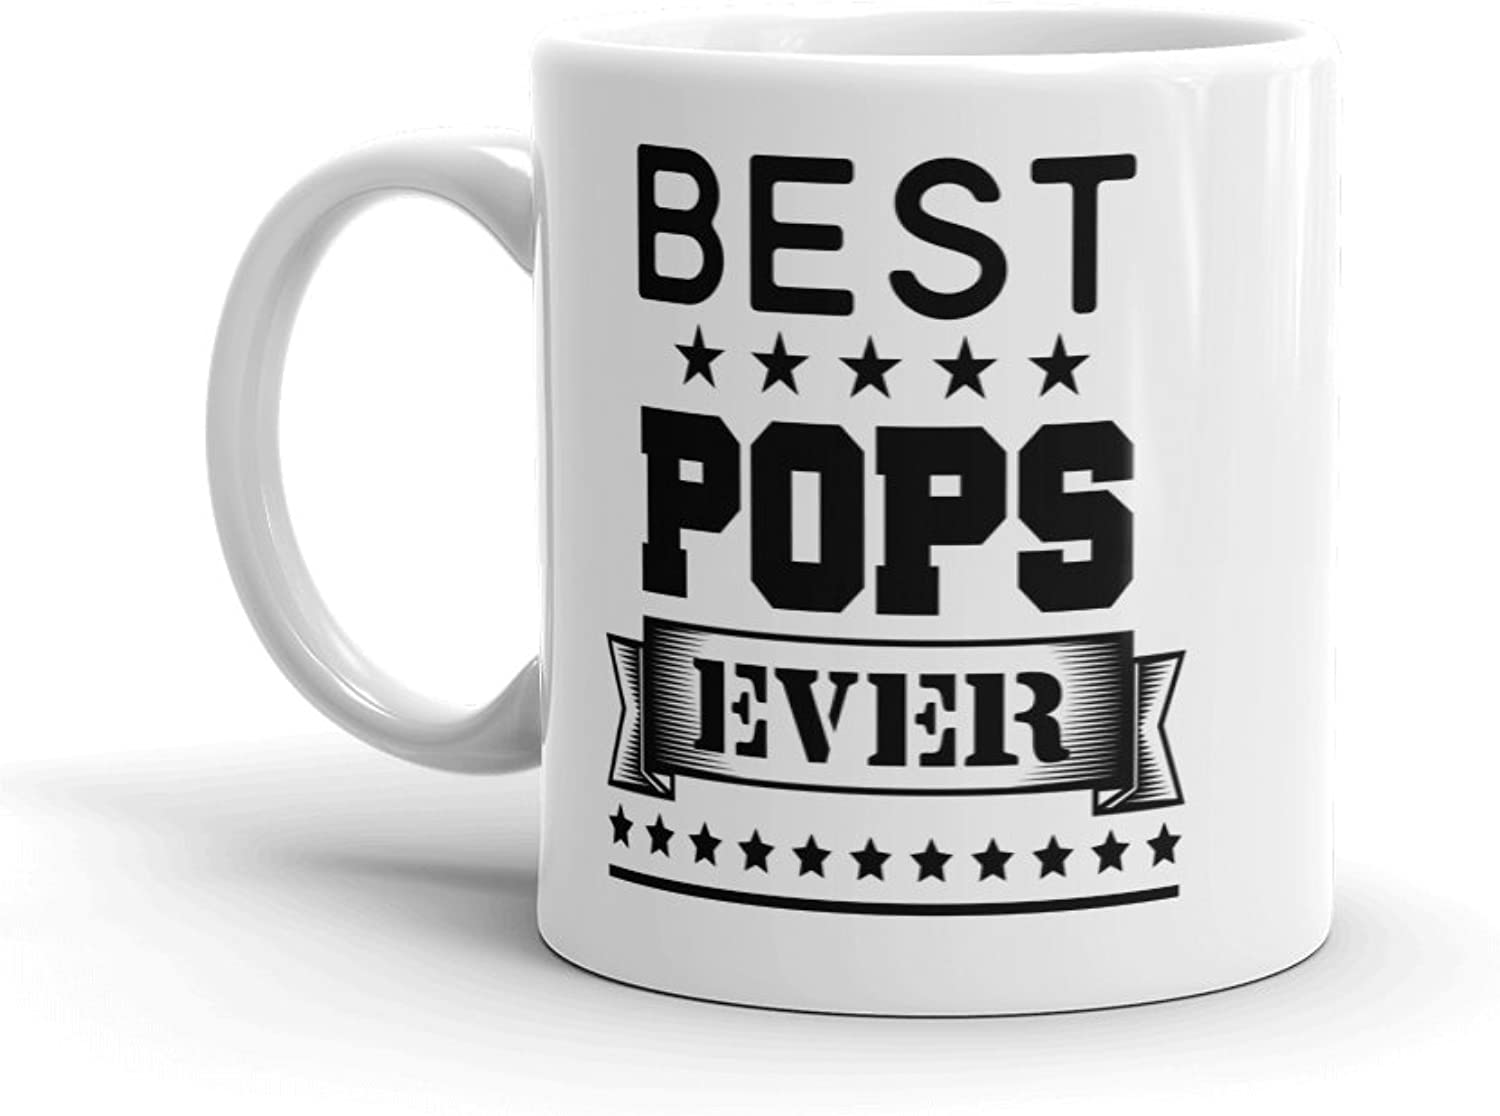 Unique Ceramic Coffee Mug Cup (11 oz.)  Best Pops Ever  Birthday Father's Day Christmas Gift for Dad Father Grandpa